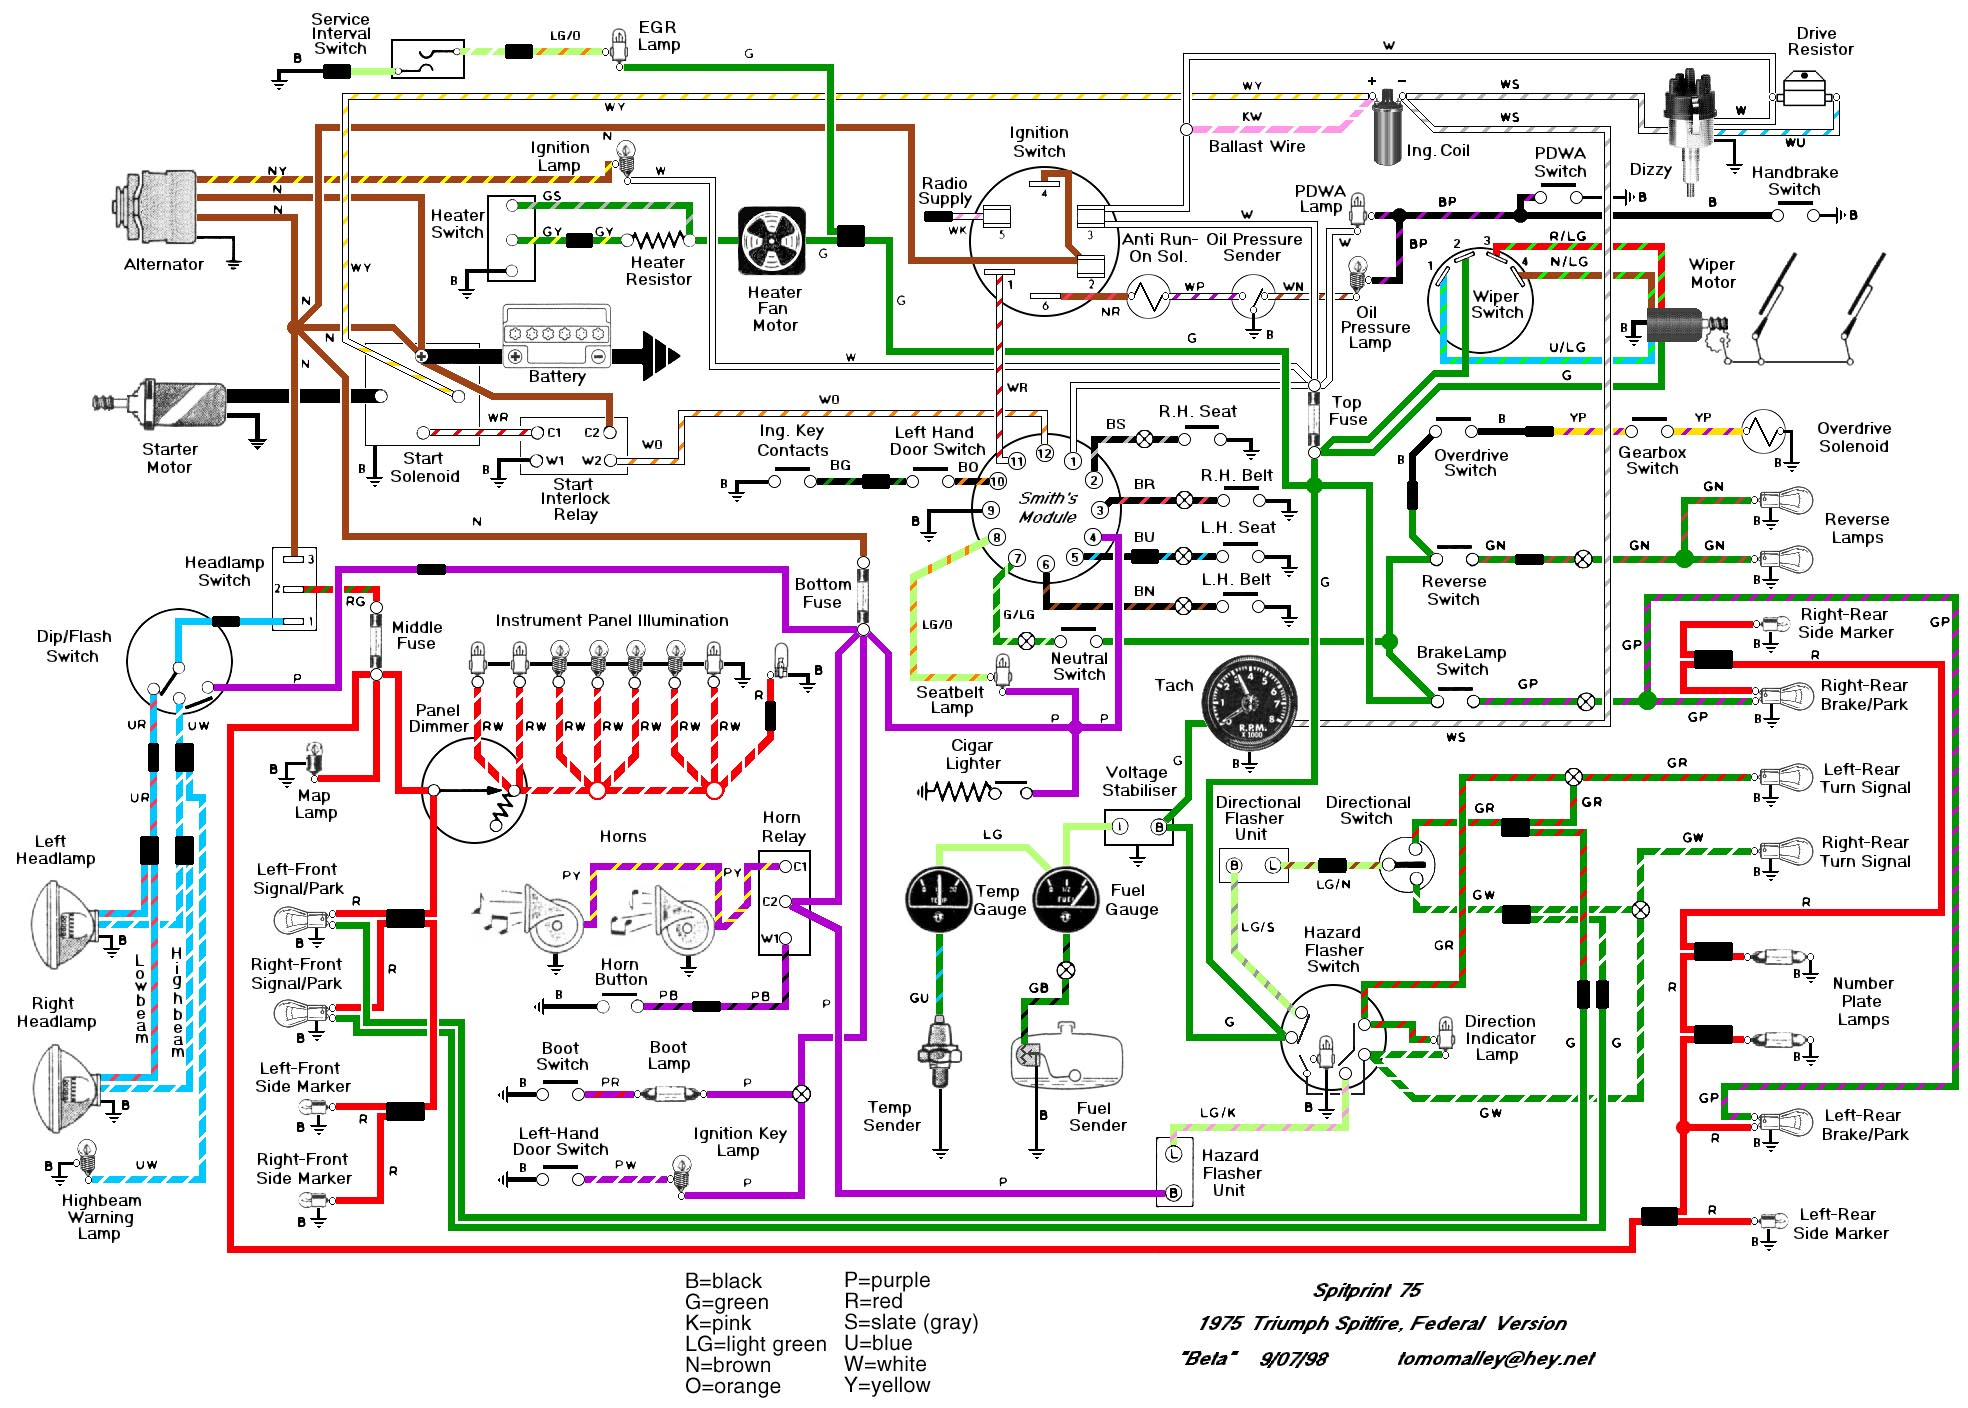 Wiring Diagram For 2000 S10 Chevy further Alfa Romeo Engine Swap further Electrical Wiring Diagram Of 1971 Dodge Coro  And Charger in addition Gm Ad244 Alternator Wiring Diagram as well 1999 Toyota 4runner Engine Wiring Diagram. on engine wiring diagram 1987 toyota truck